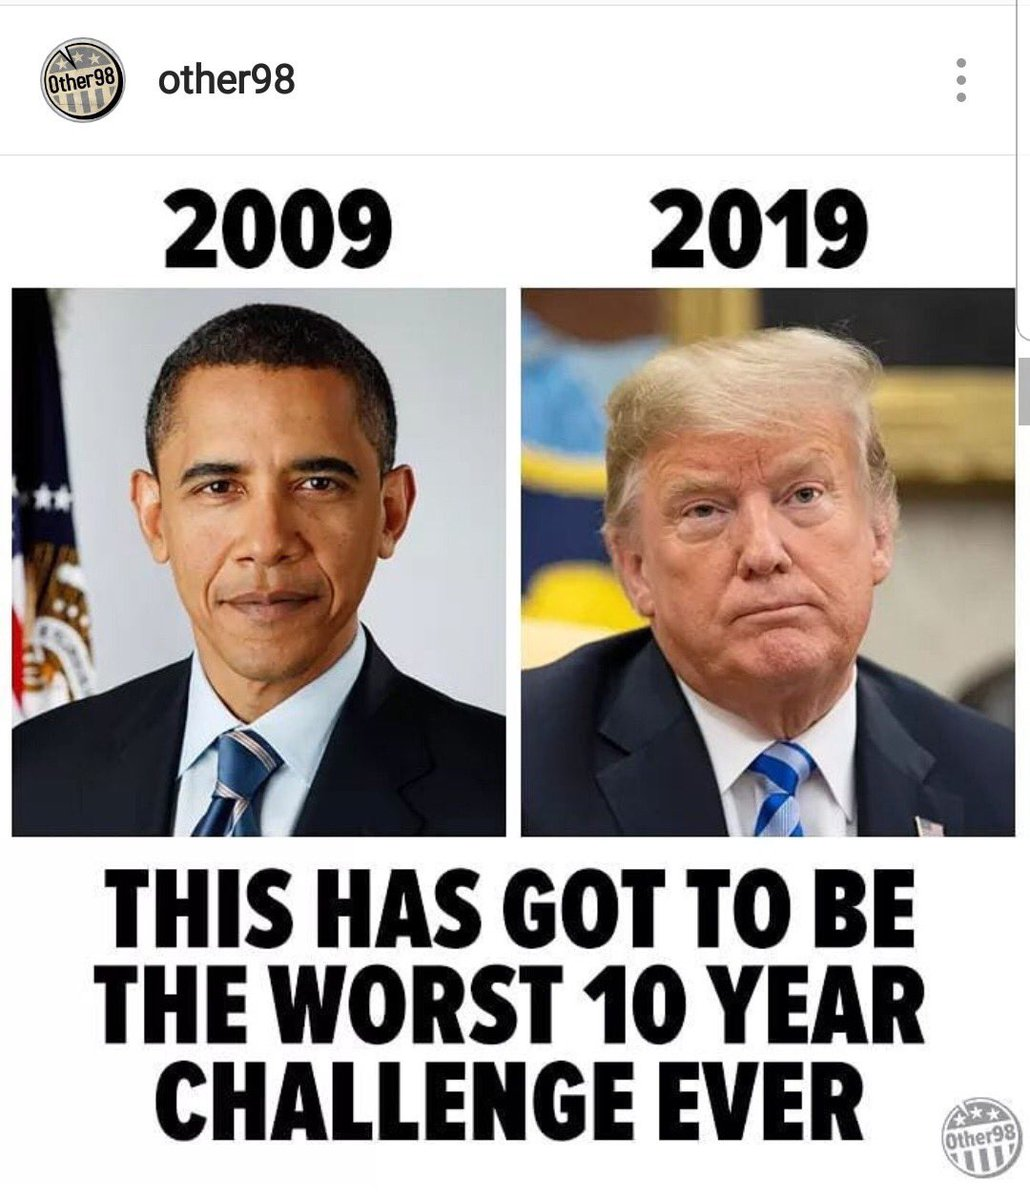 Obama was expected to be professional, pragmatic, graceful, and near perfect. Trump is sewage water in a hefty bag, devoutly treasonous to Russia.